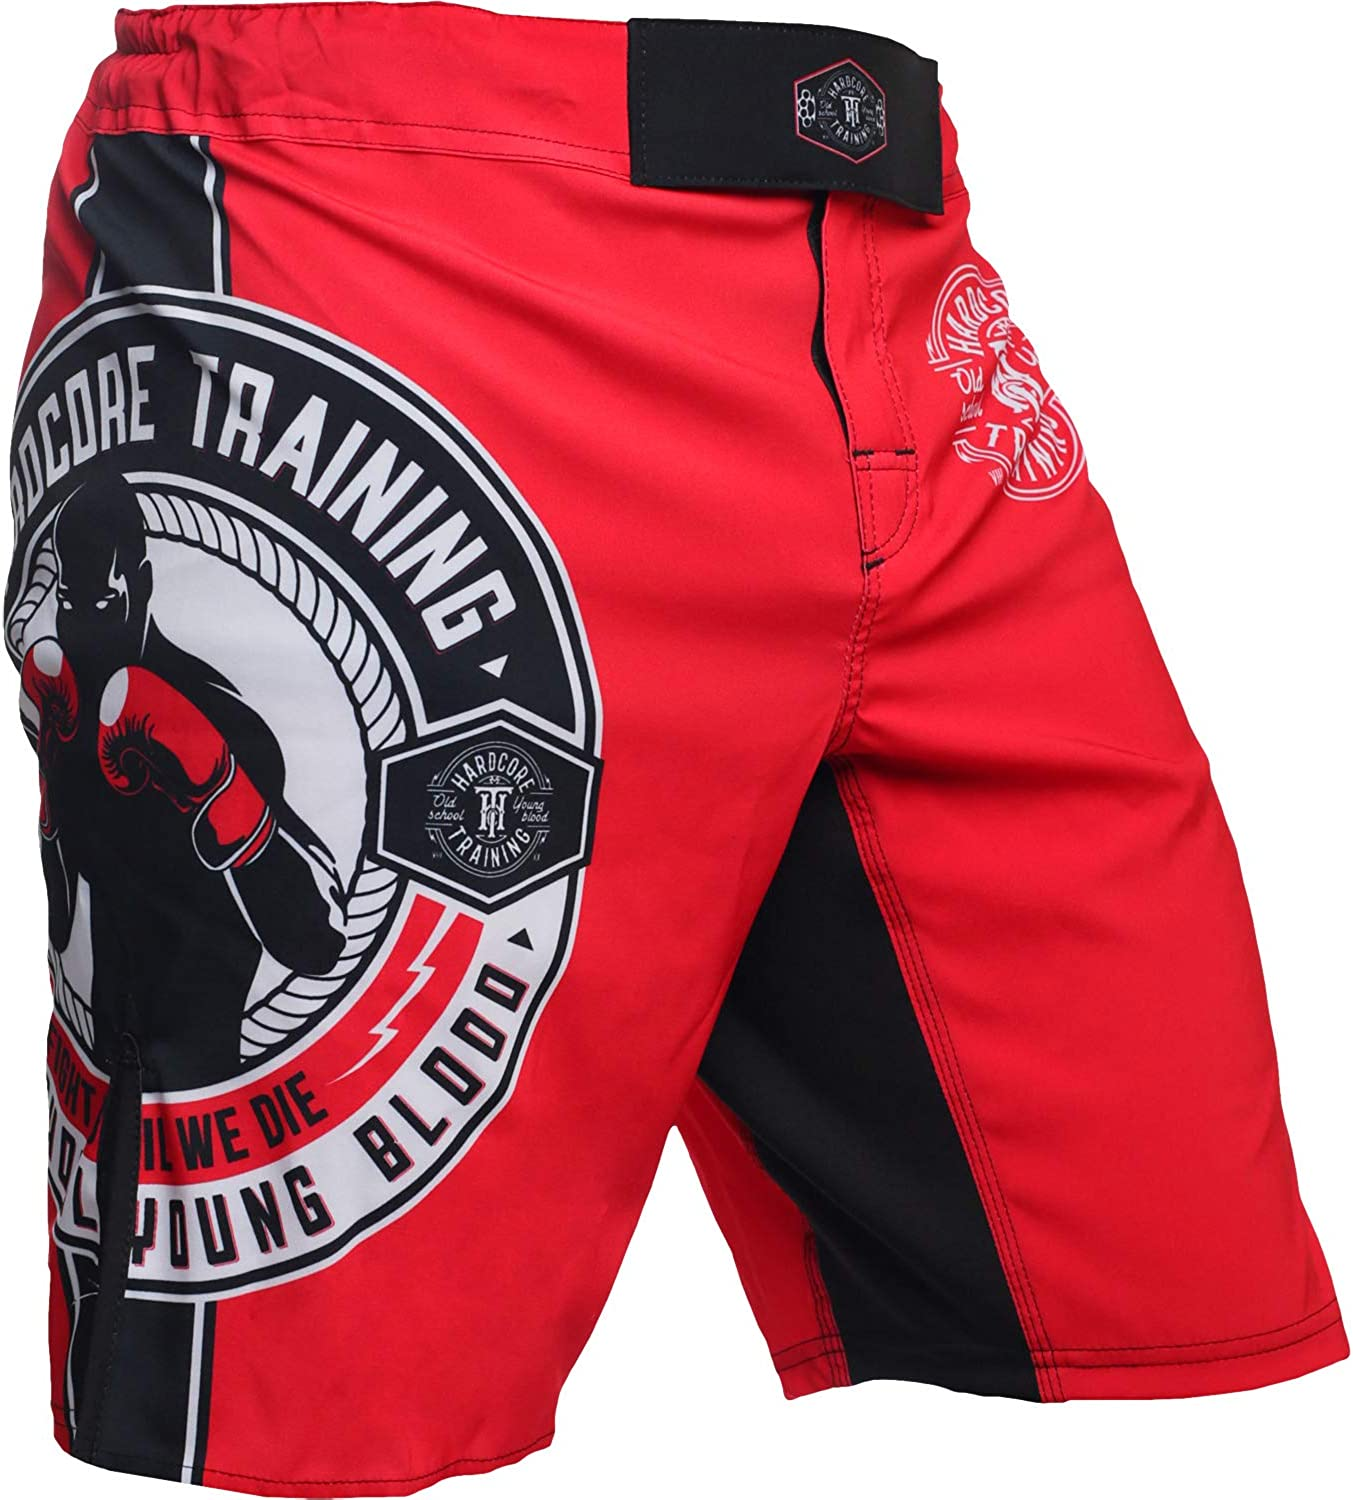 Hardcore Training Fight Shorts Men's Round Boxing MMA BJJ Fitness Crossfit Muay Thai No Gi 71APwqf5GzL